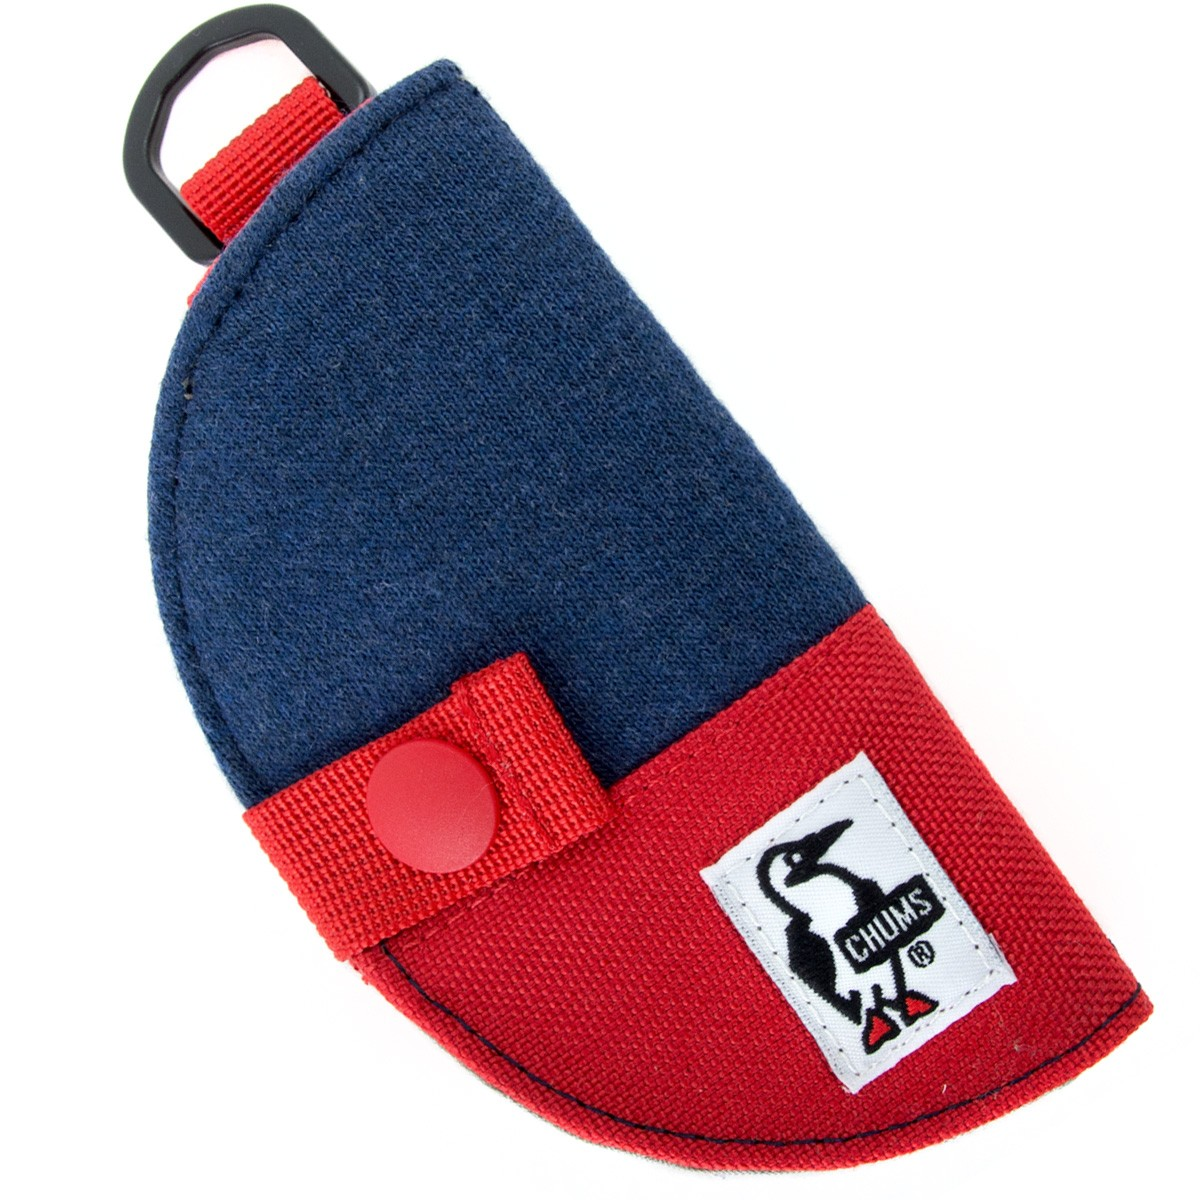 CHUMS Half-moon Key Case